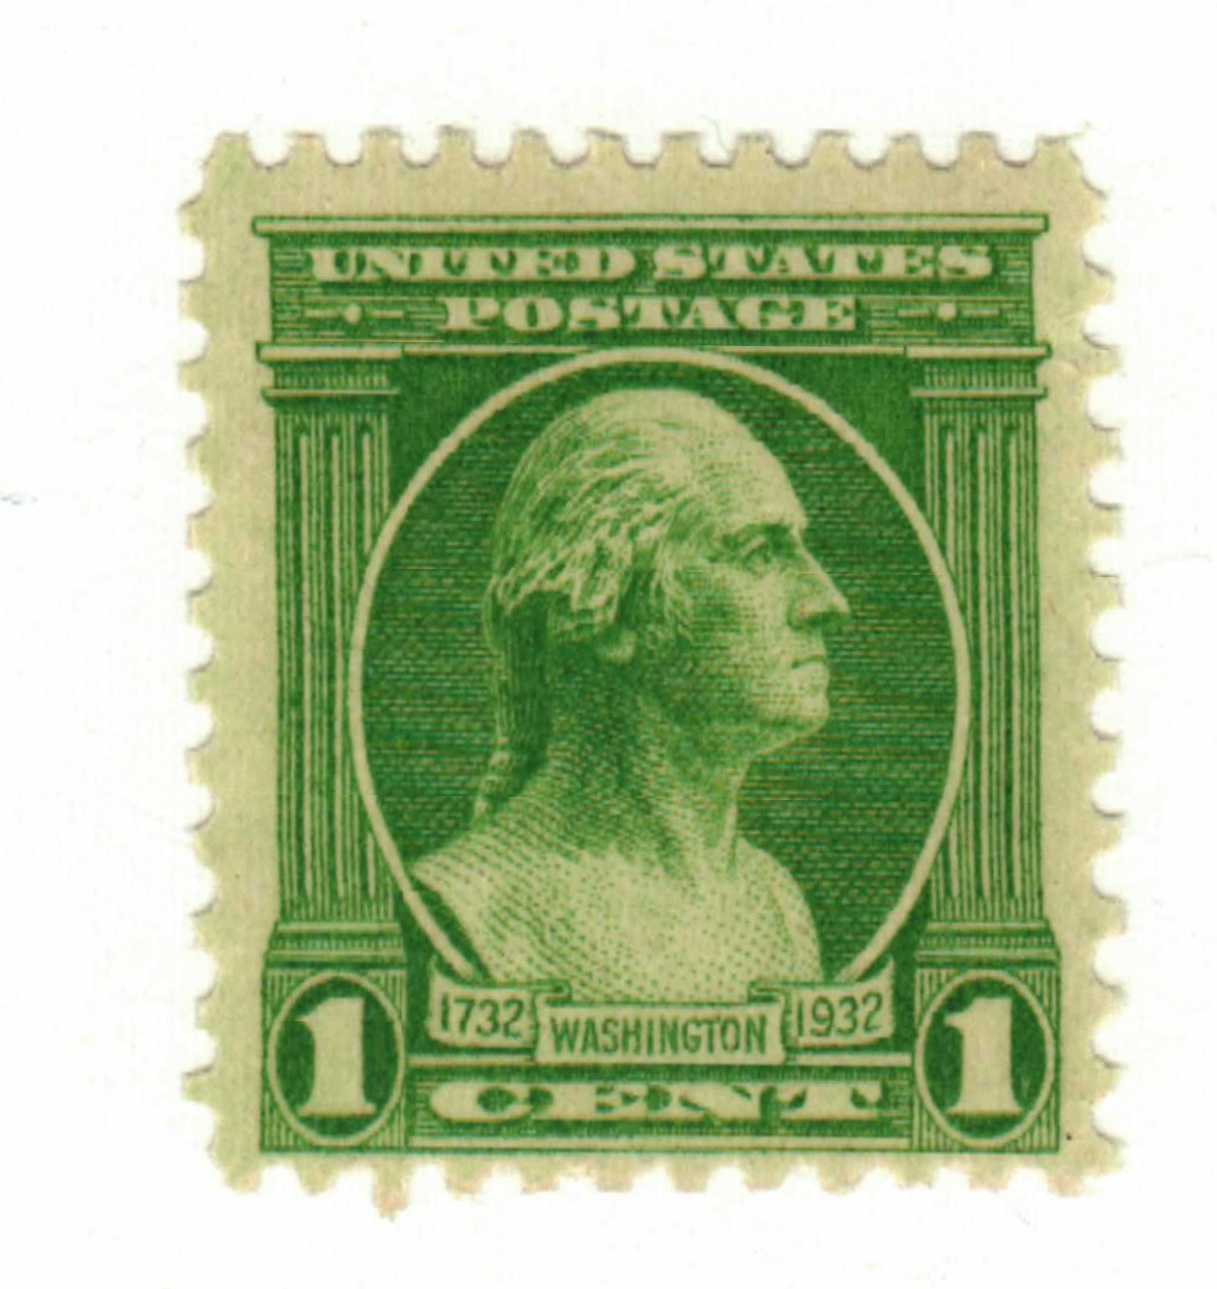 1932 Washington Bicentennial: 1c Washington from the Houdon Bust